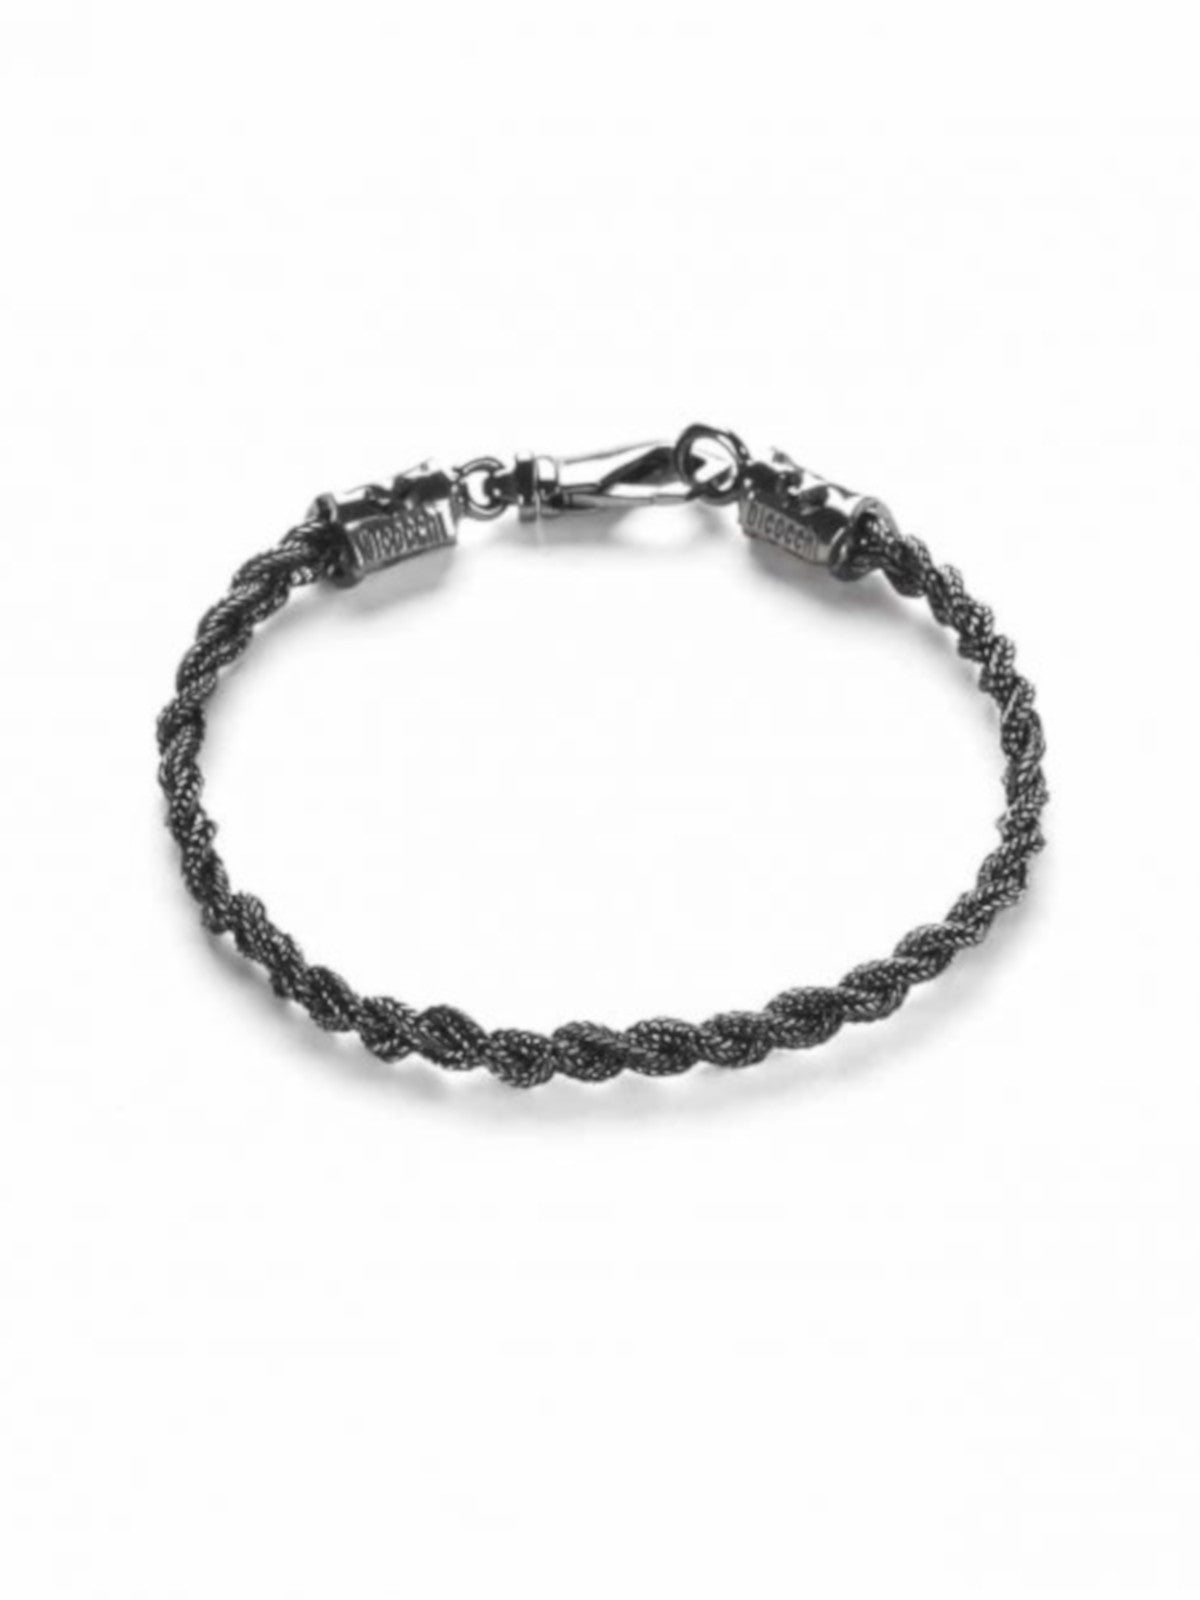 TINY BLACK BRAIDED BRACELET